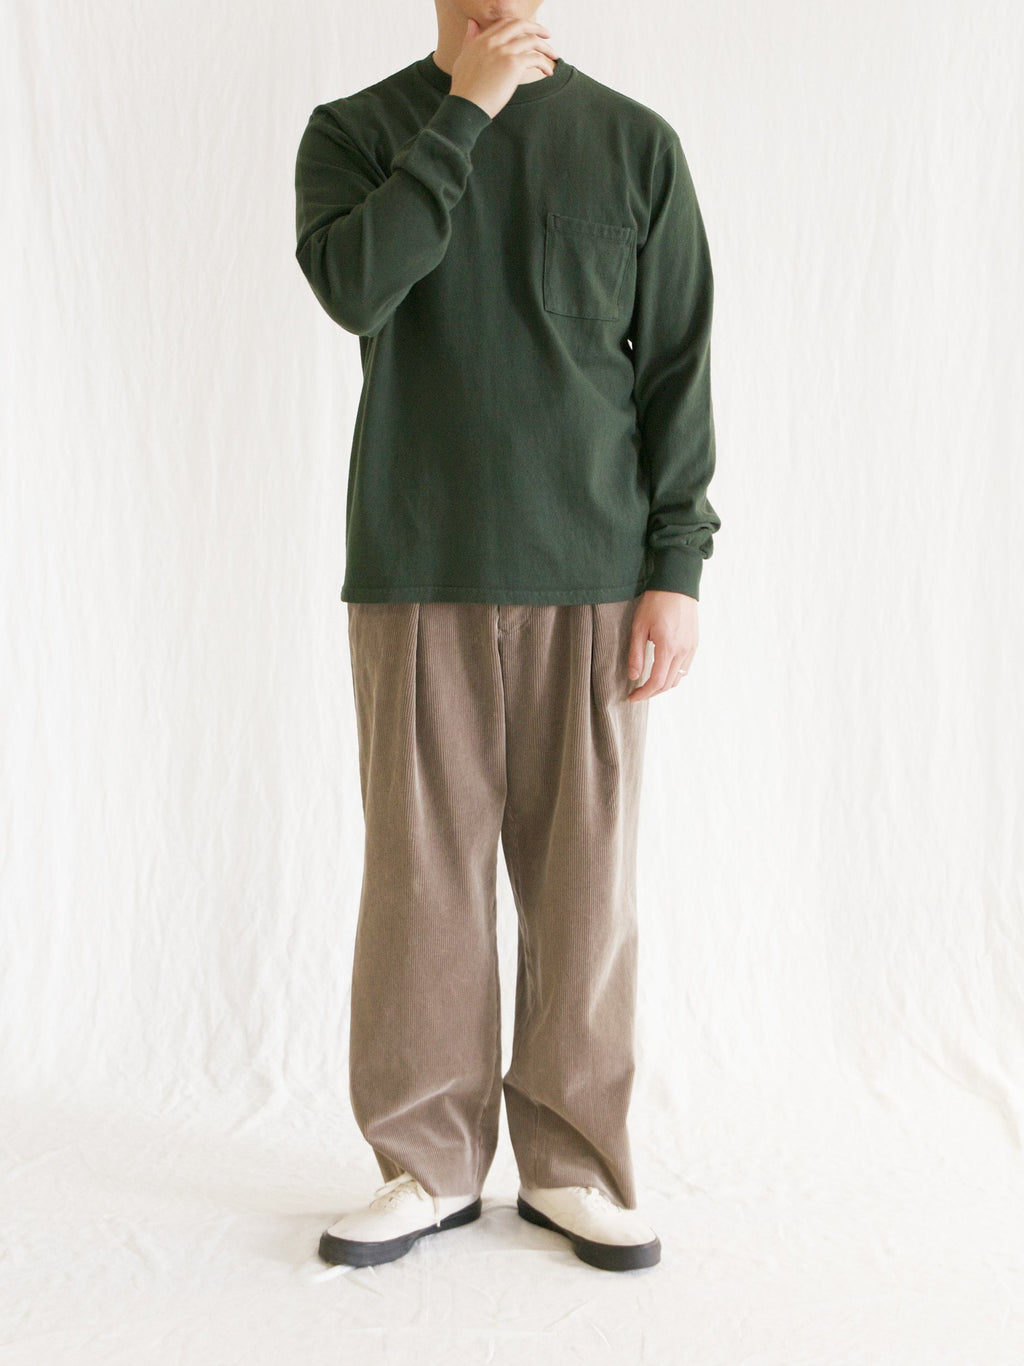 Namu Shop - Kaptain Sunshine 9-Wale Corduroy Easy Trousers